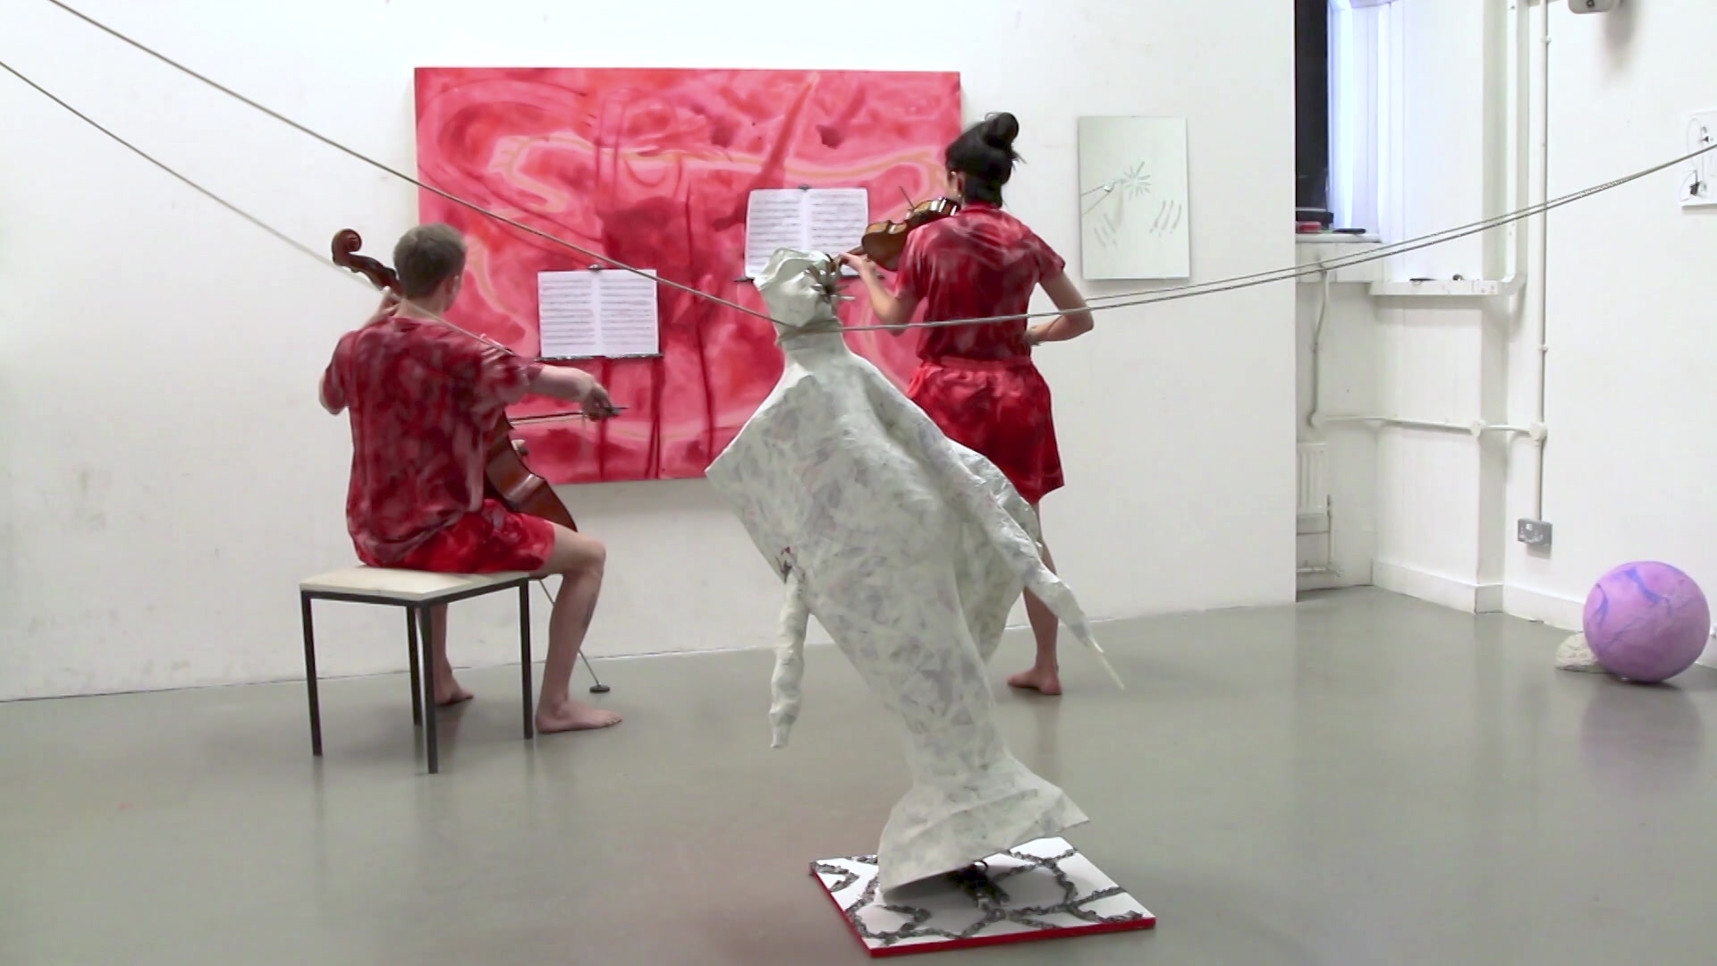 Eleanor Wang, Grotesque performance extract, 2016